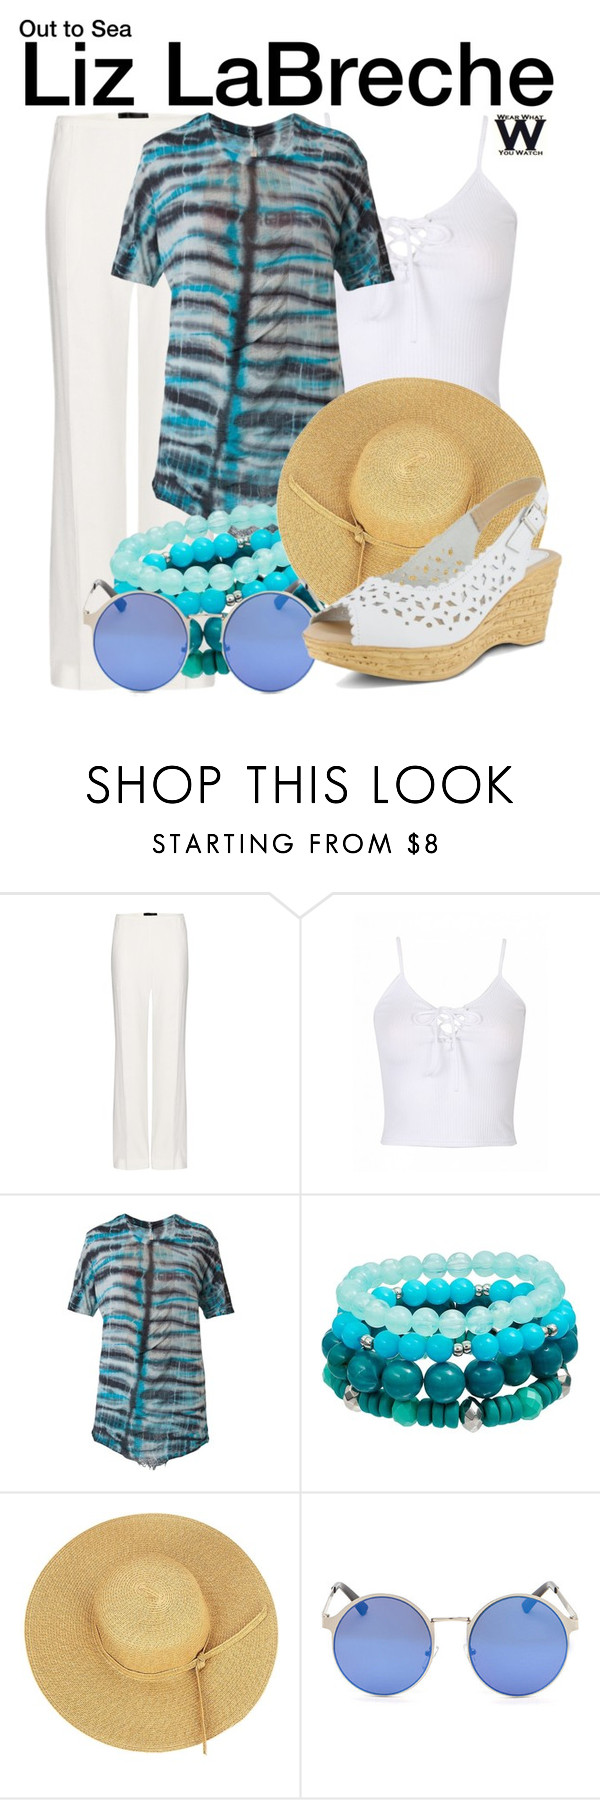 """""""Out to Sea"""" by wearwhatyouwatch ❤ liked on Polyvore featuring Haider Ackermann, Raquel Allegra, Spring Step, wearwhatyouwatch and film"""